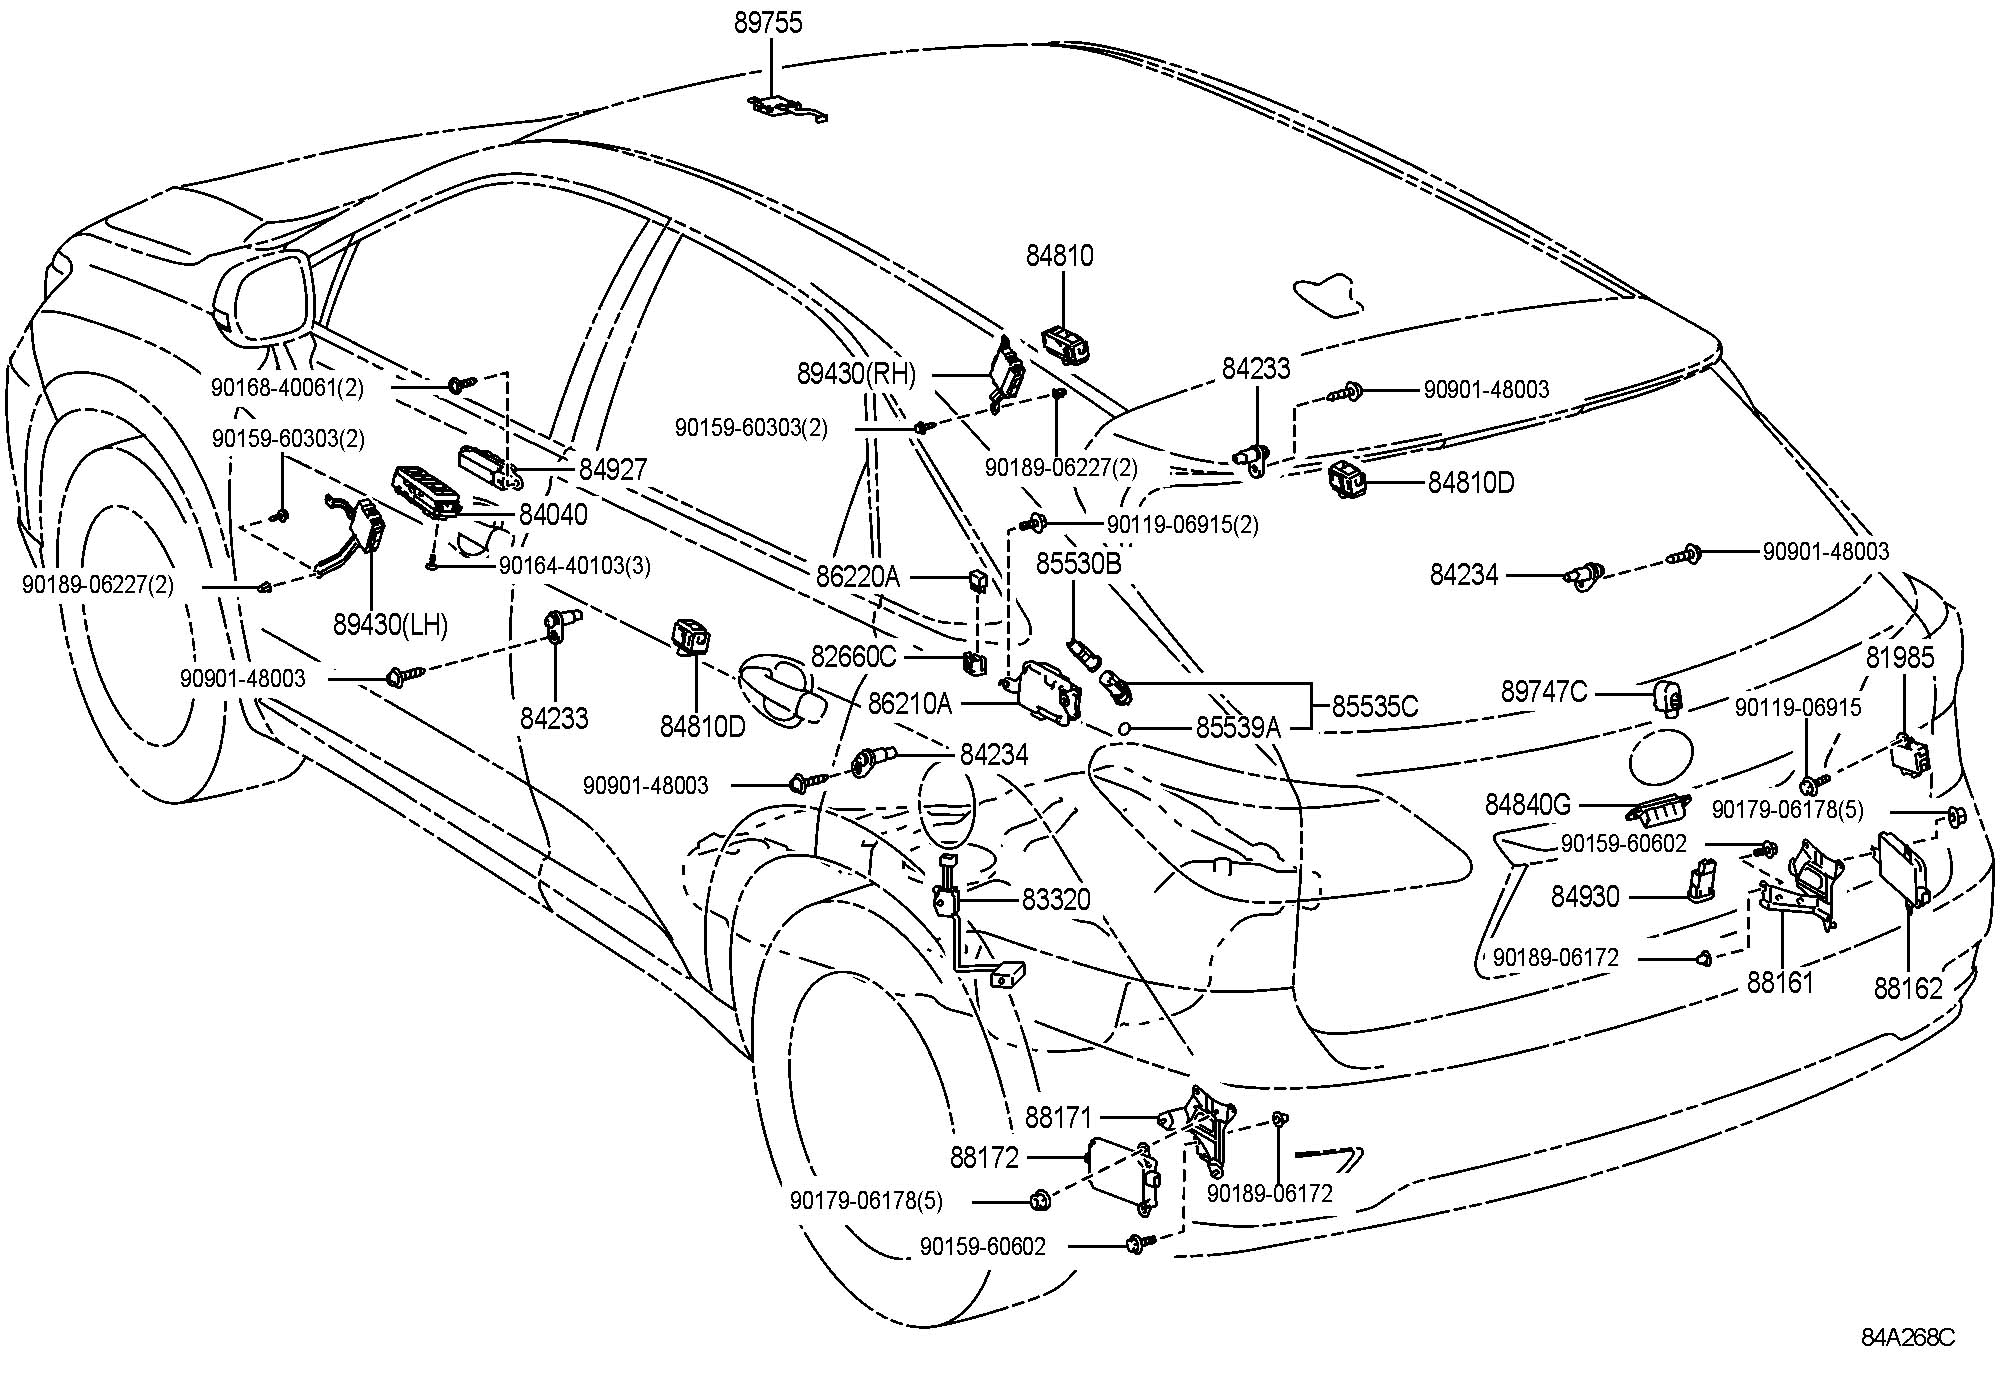 2000 Lexus Rx300 Engine Parts Diagram Wiring Schematic Archive Of 1999 Opinions About U2022 Rh Voterid Co